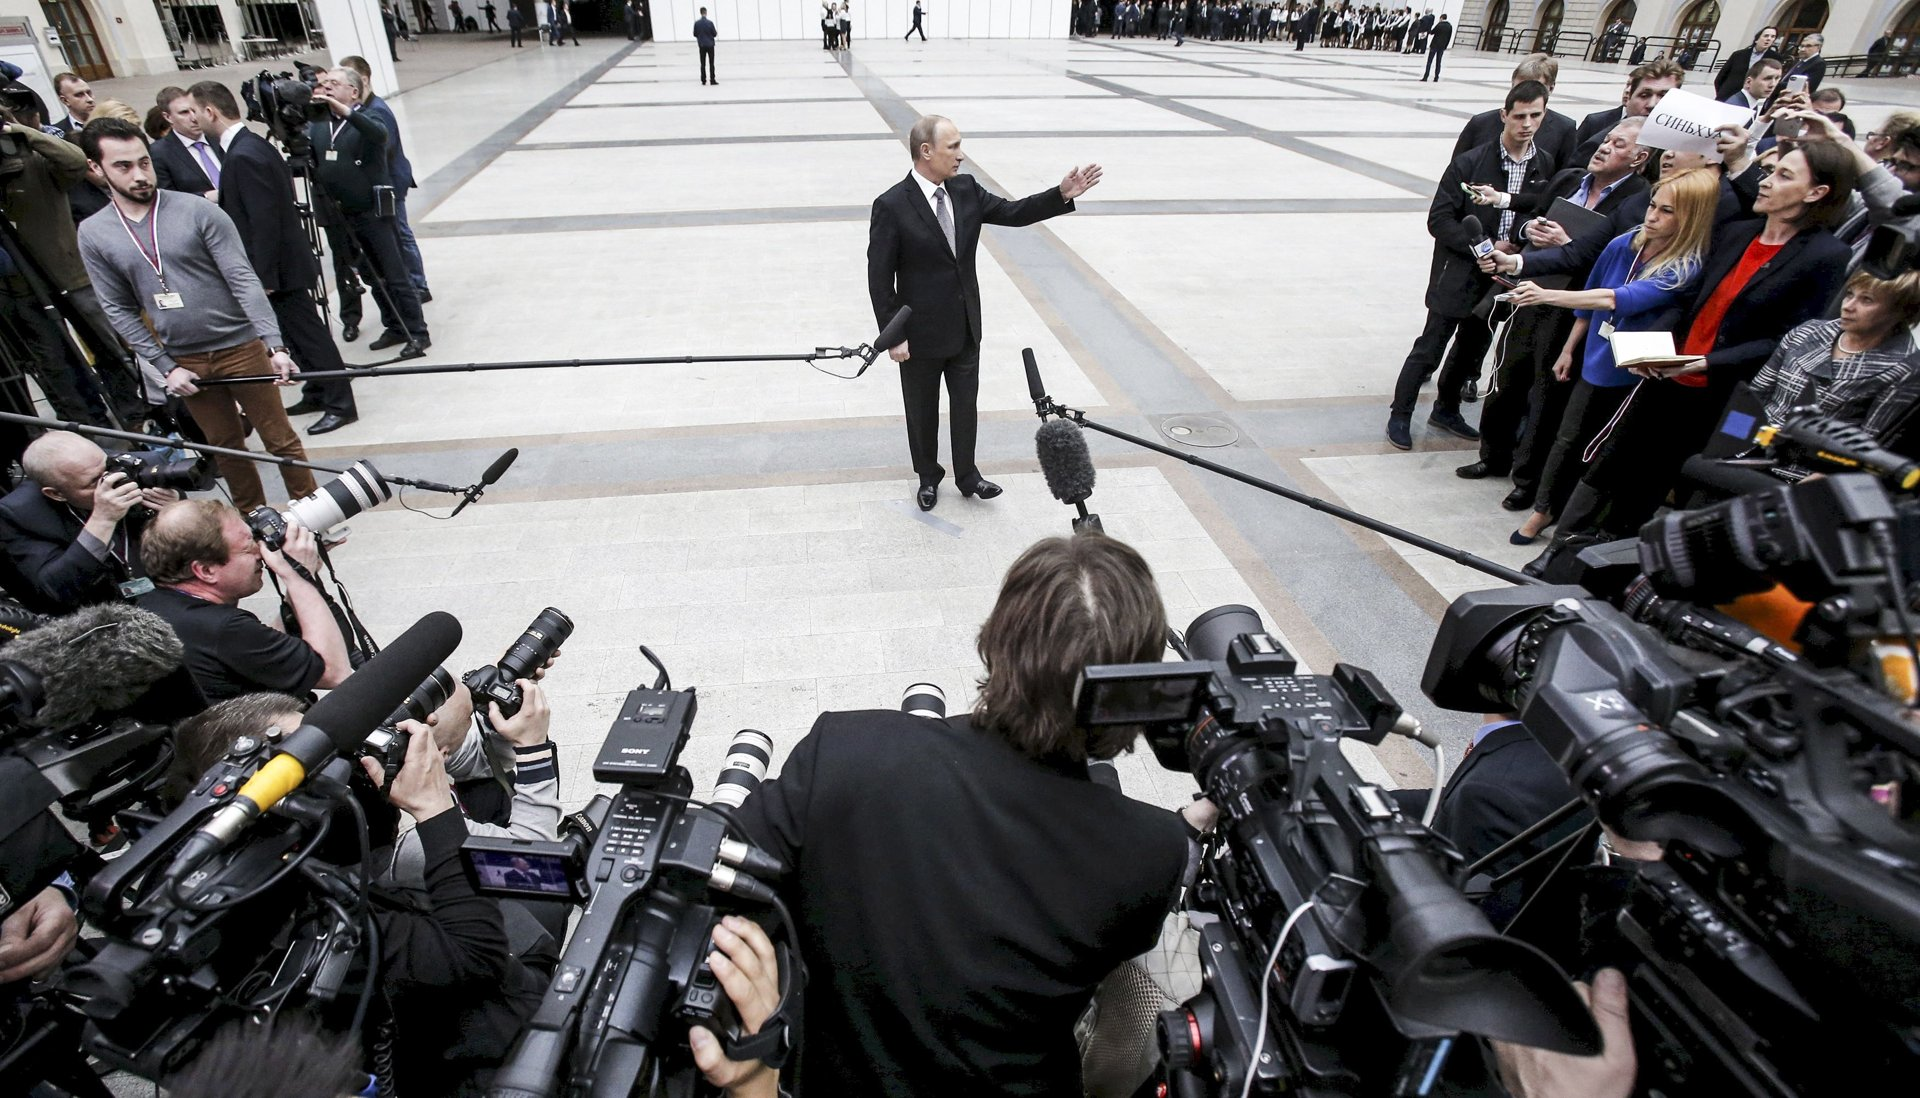 Sometimes Single Voice Is Most Powerful >> How The Media Became One Of Vladimir Putin S Most Powerful Weapons